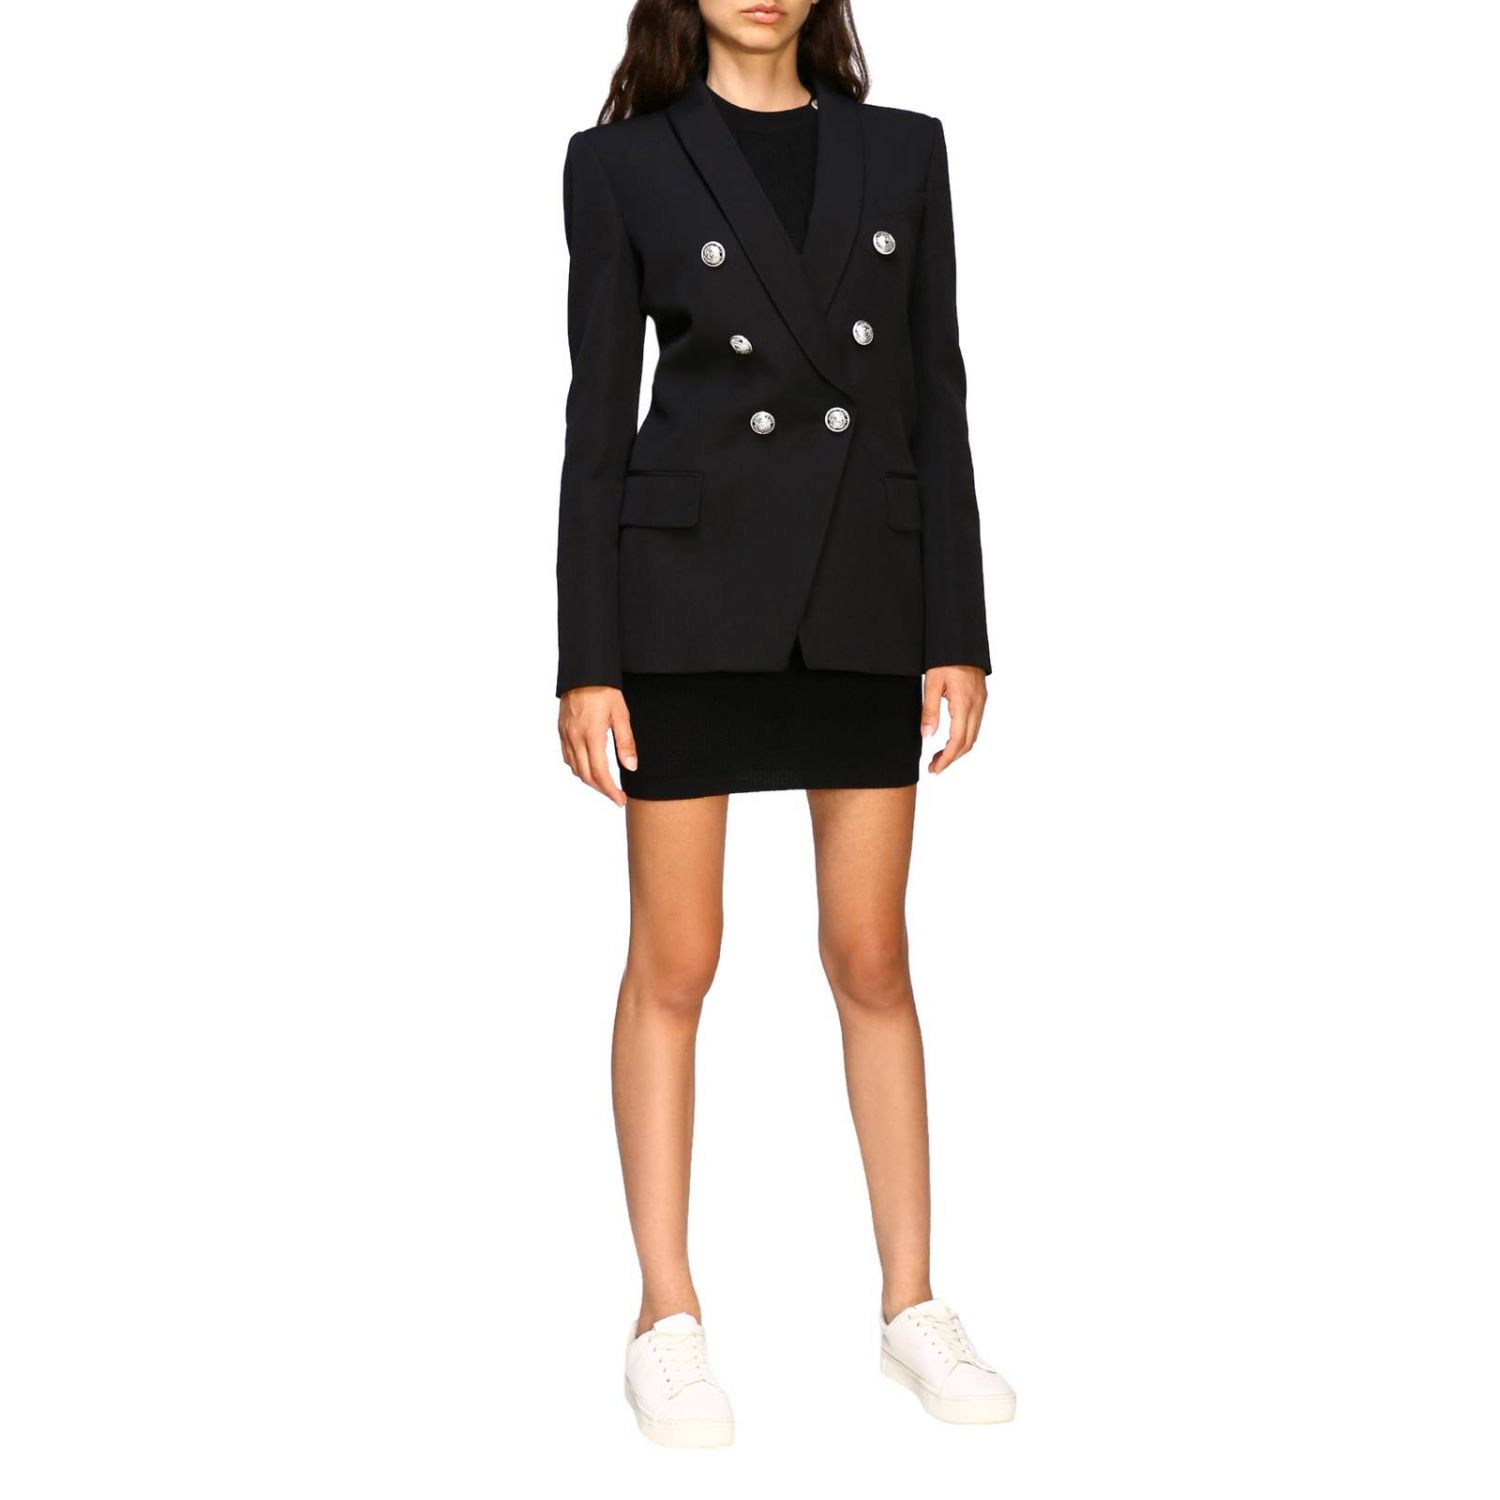 Balmain double-breasted blazer with jewel buttons black 2